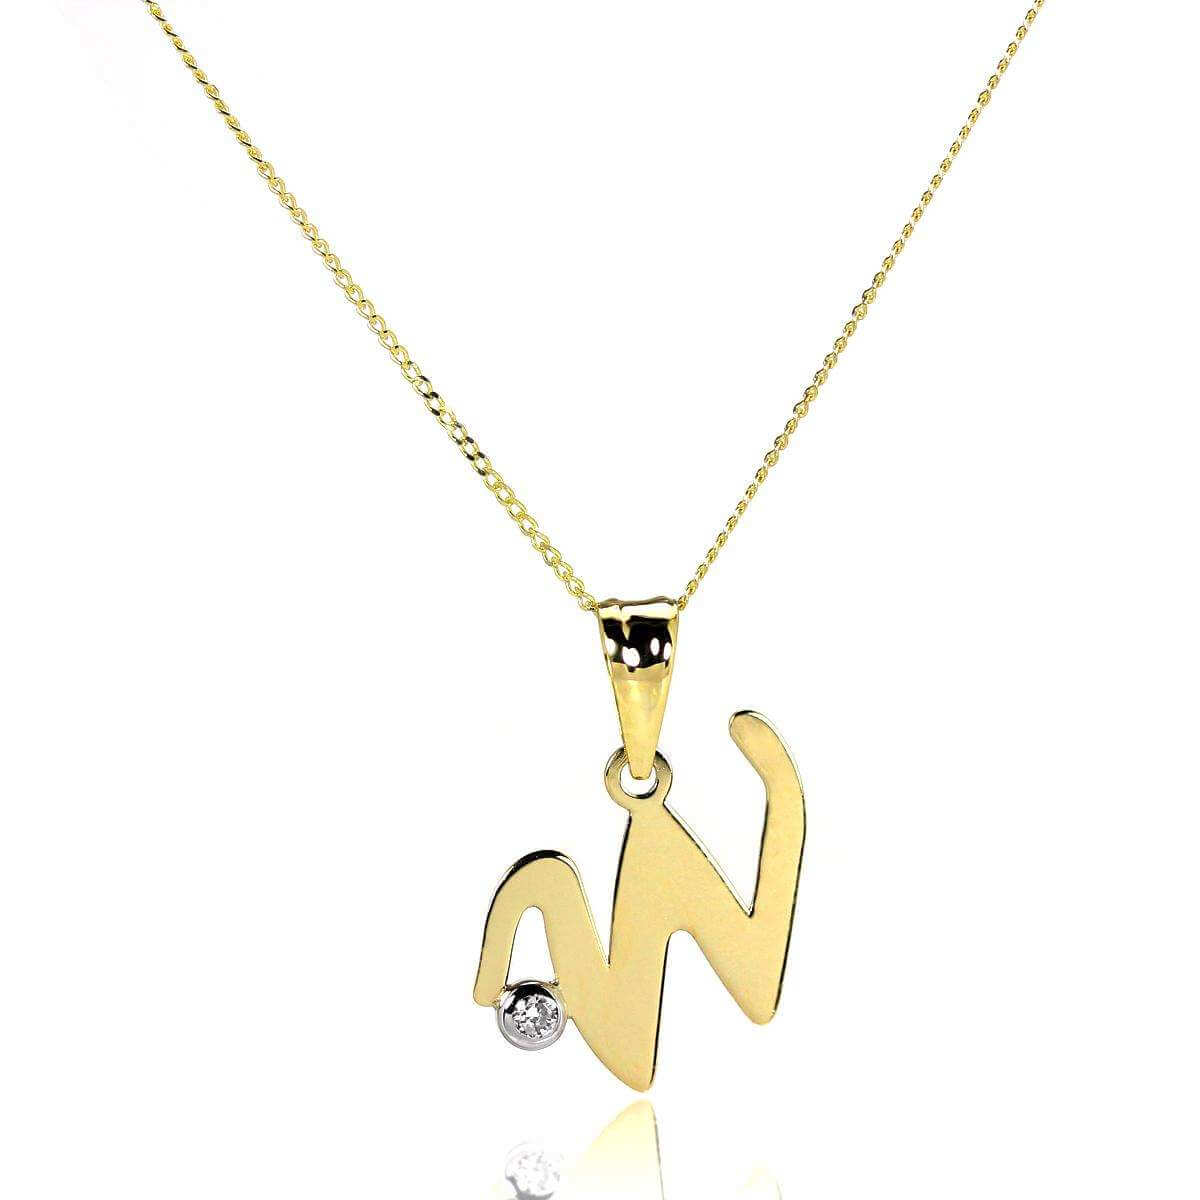 9ct Gold Letter W Pendant with CZ Crystal